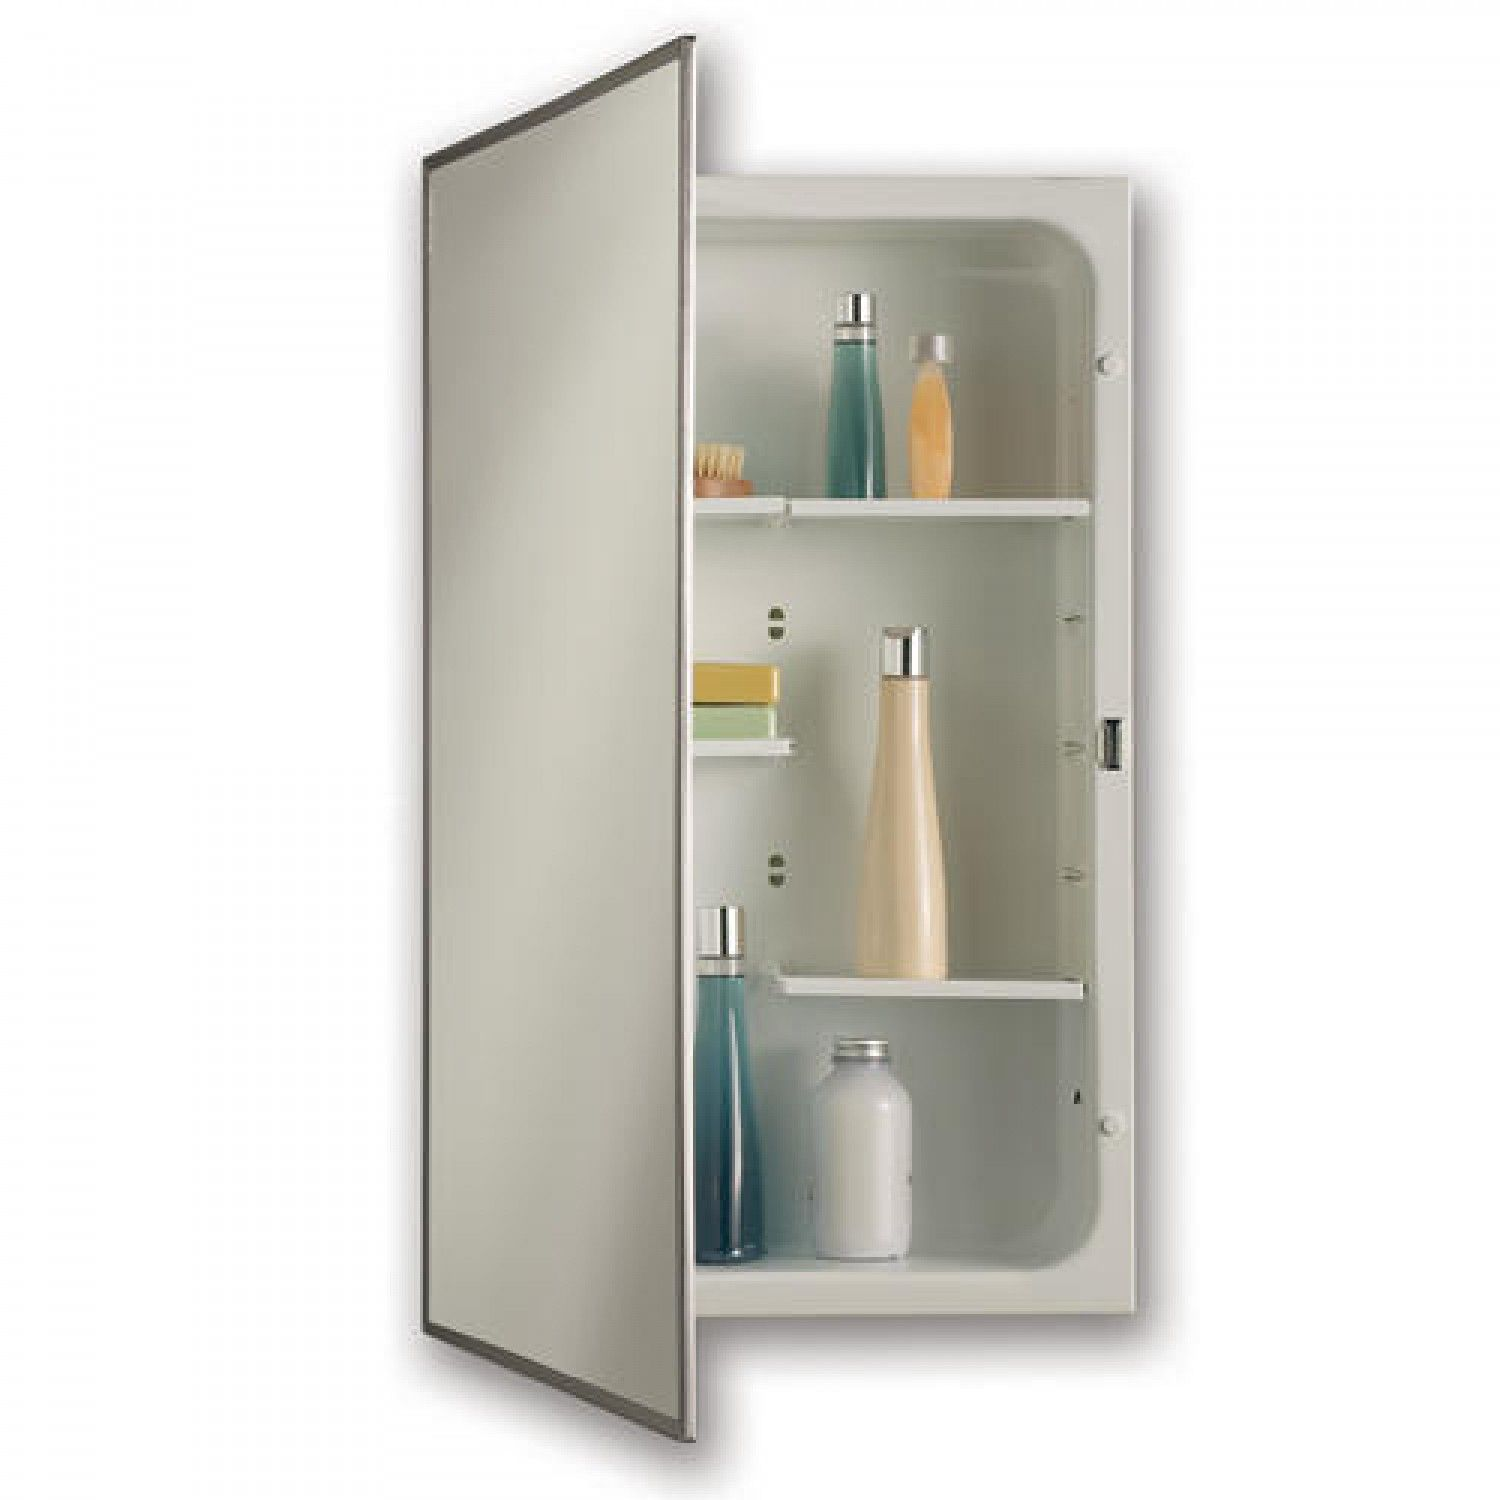 Modular Shelf Recessed Medicine Cabinet Stainless Steel